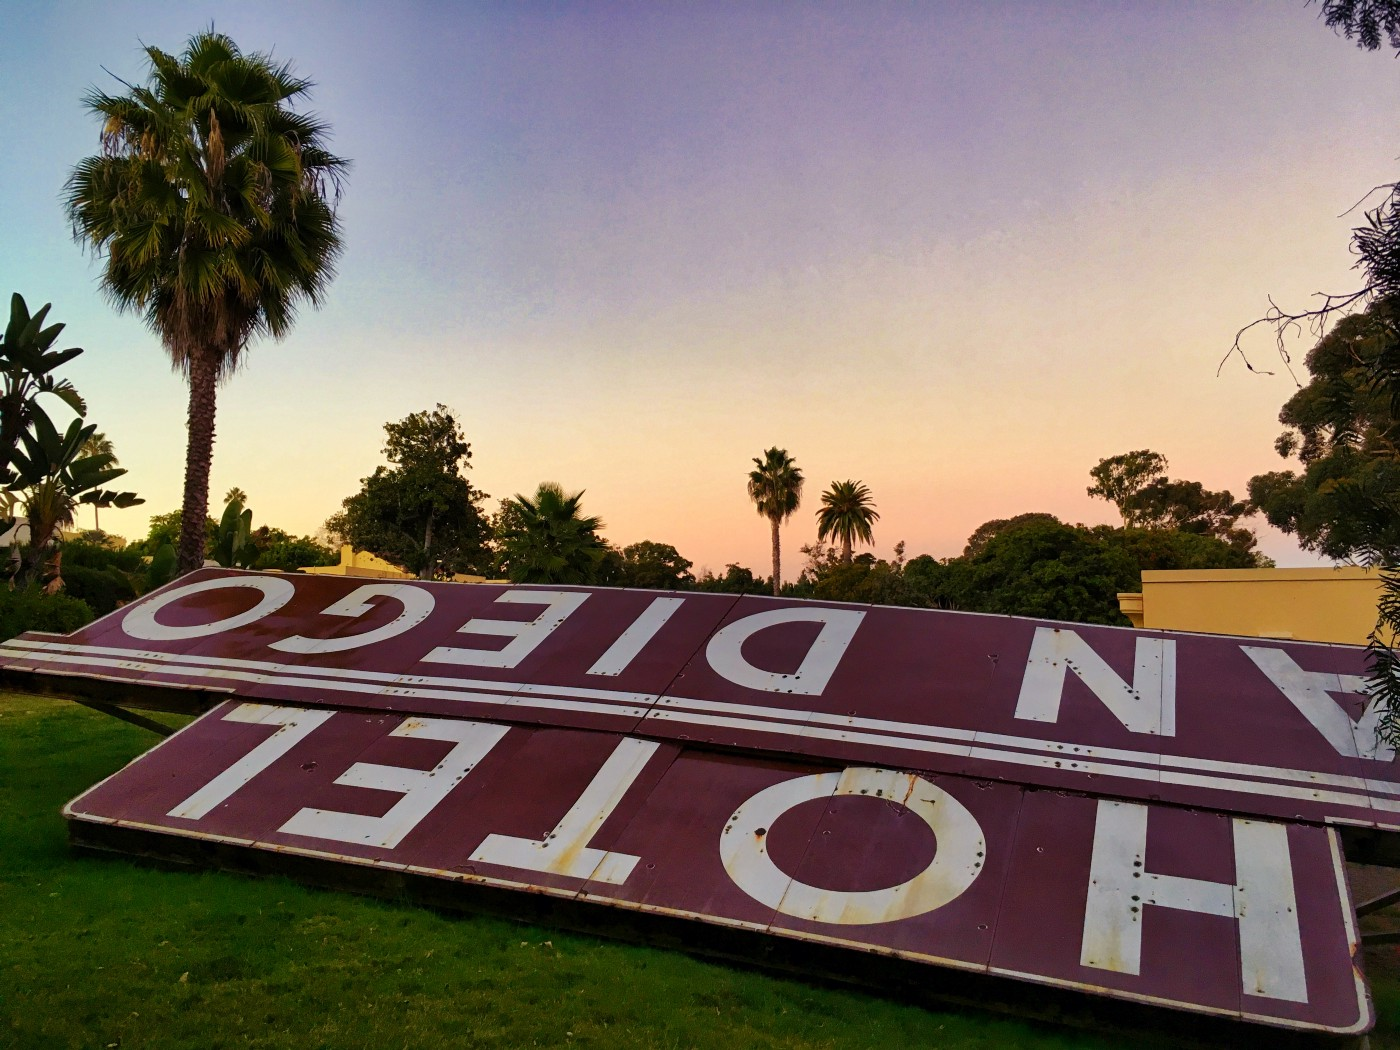 A vintage Hotel San Diego sign lays on the ground with a sunset and palm trees in the background